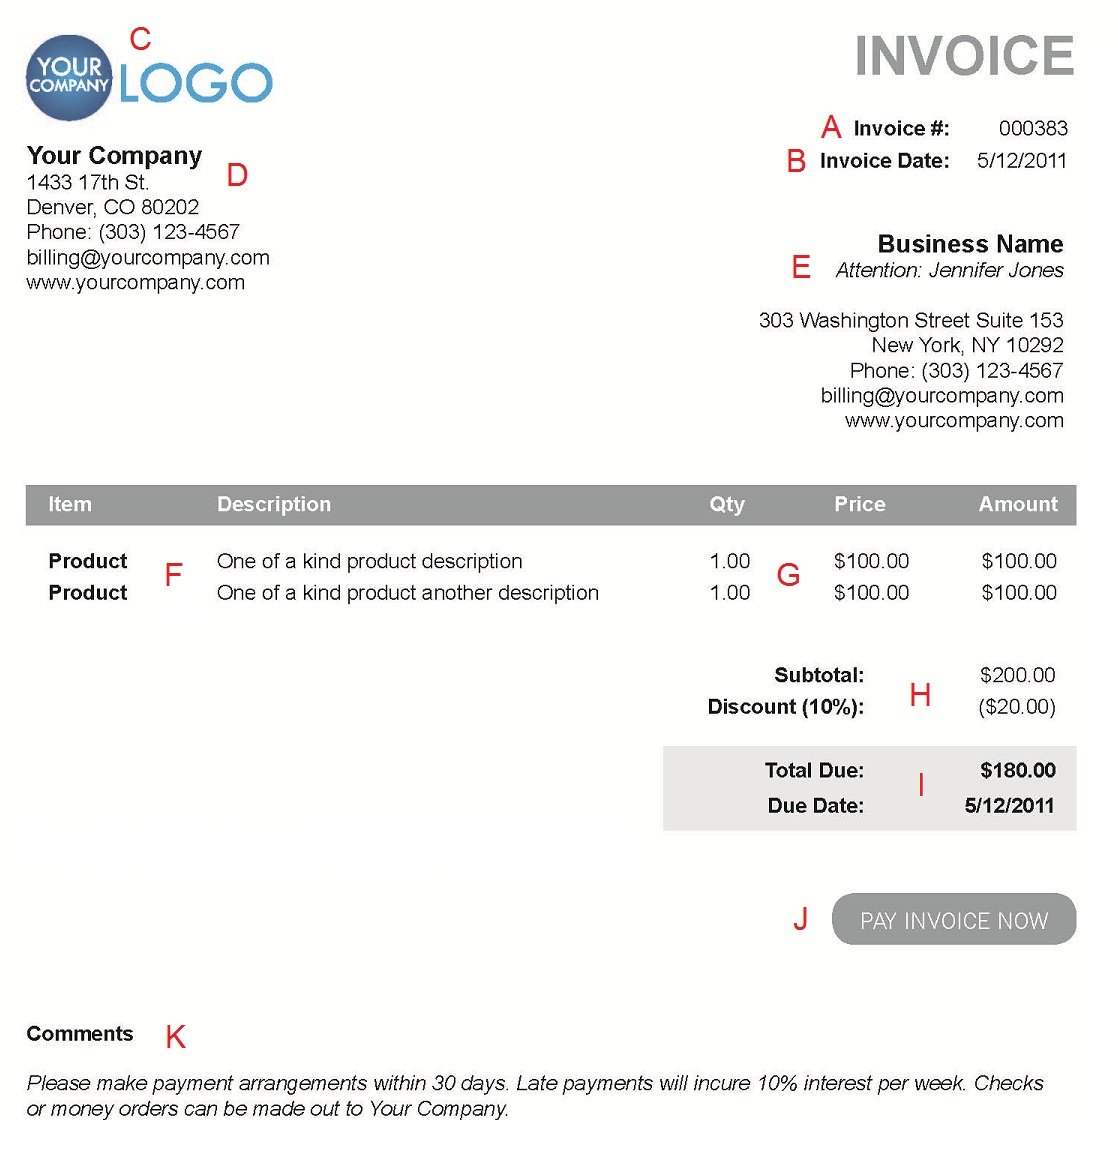 Coolmathgamesus  Stunning The  Different Sections Of An Electronic Payment Invoice With Exquisite A  With Charming Online Invoices Free Also Invoice Due Date Calculator In Addition Honda Fit Invoice Price And Google Invoicing As Well As New Car Invoice Pricing Additionally Fedex Commerical Invoice From Paysimplecom With Coolmathgamesus  Exquisite The  Different Sections Of An Electronic Payment Invoice With Charming A  And Stunning Online Invoices Free Also Invoice Due Date Calculator In Addition Honda Fit Invoice Price From Paysimplecom